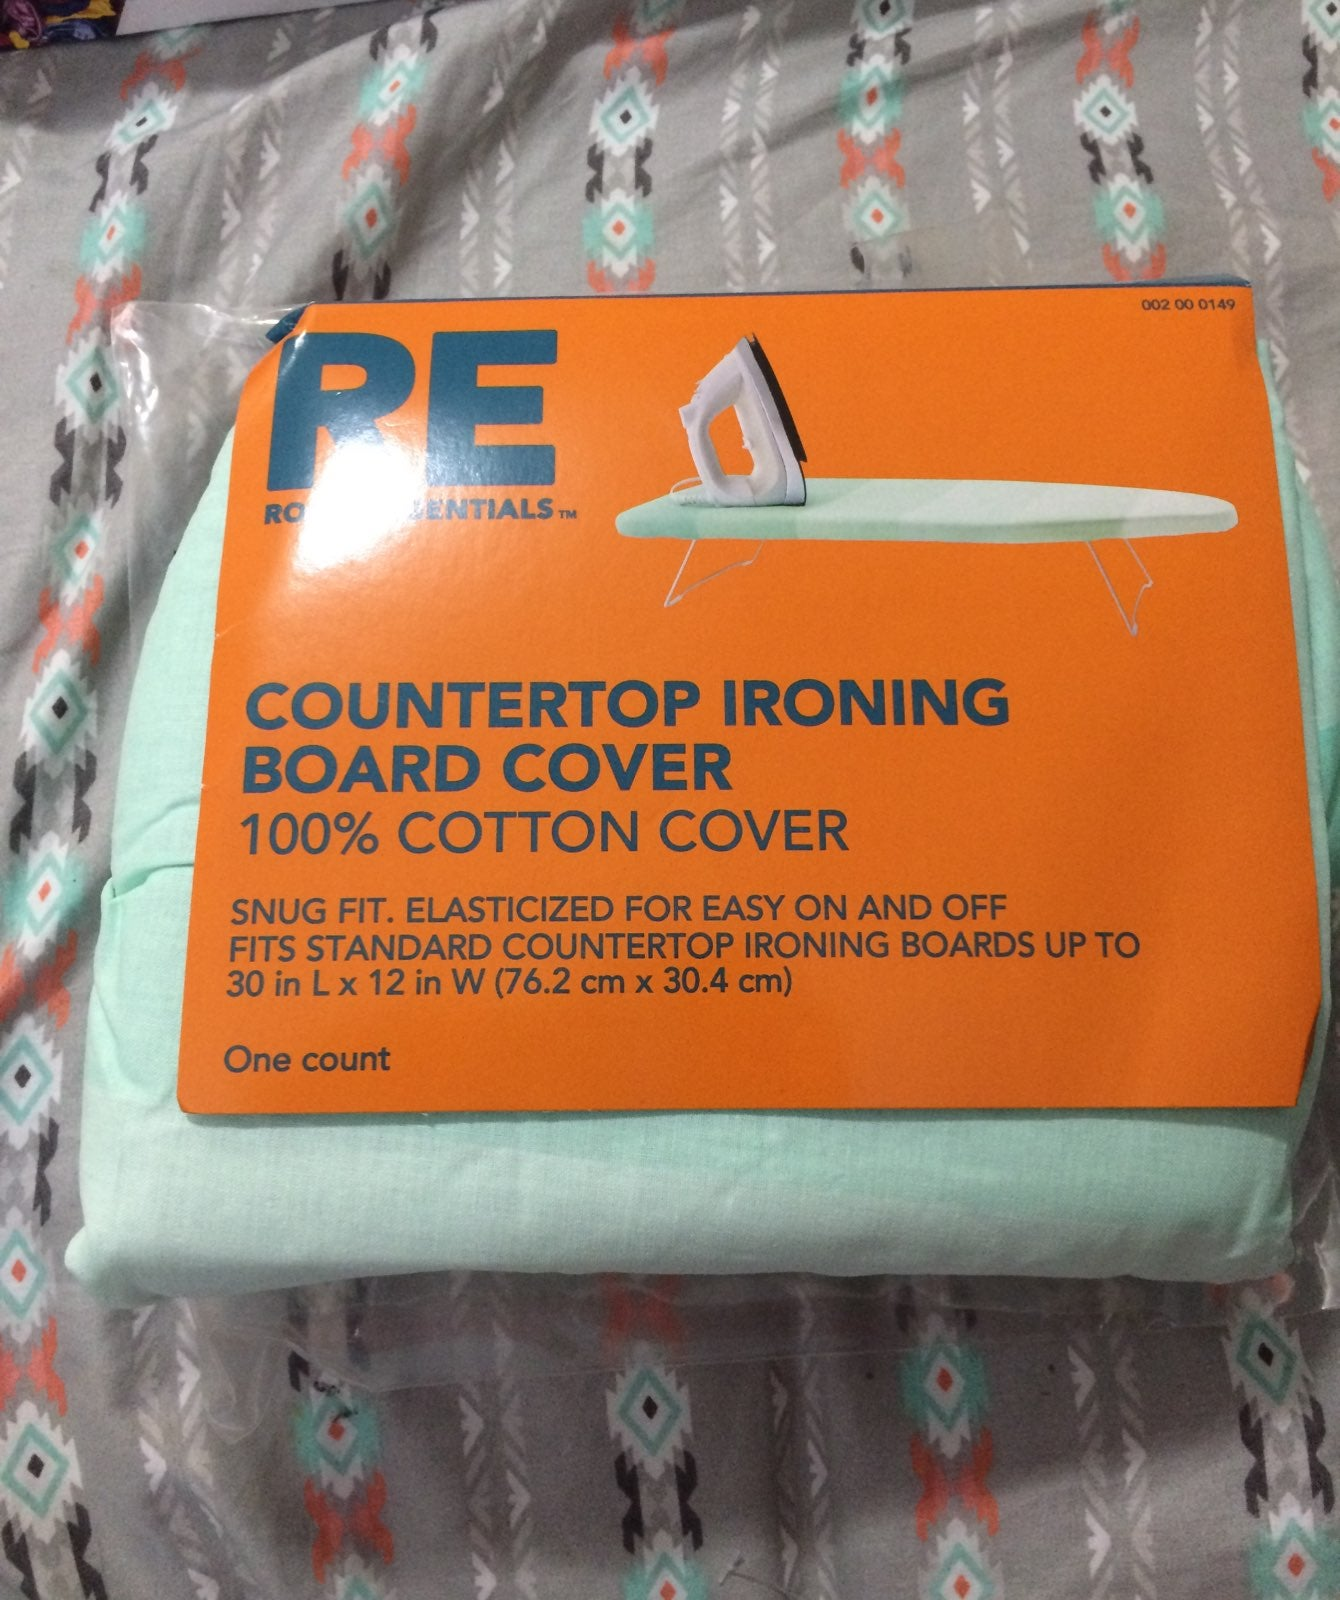 Teal Countertop Ironing Board Cover